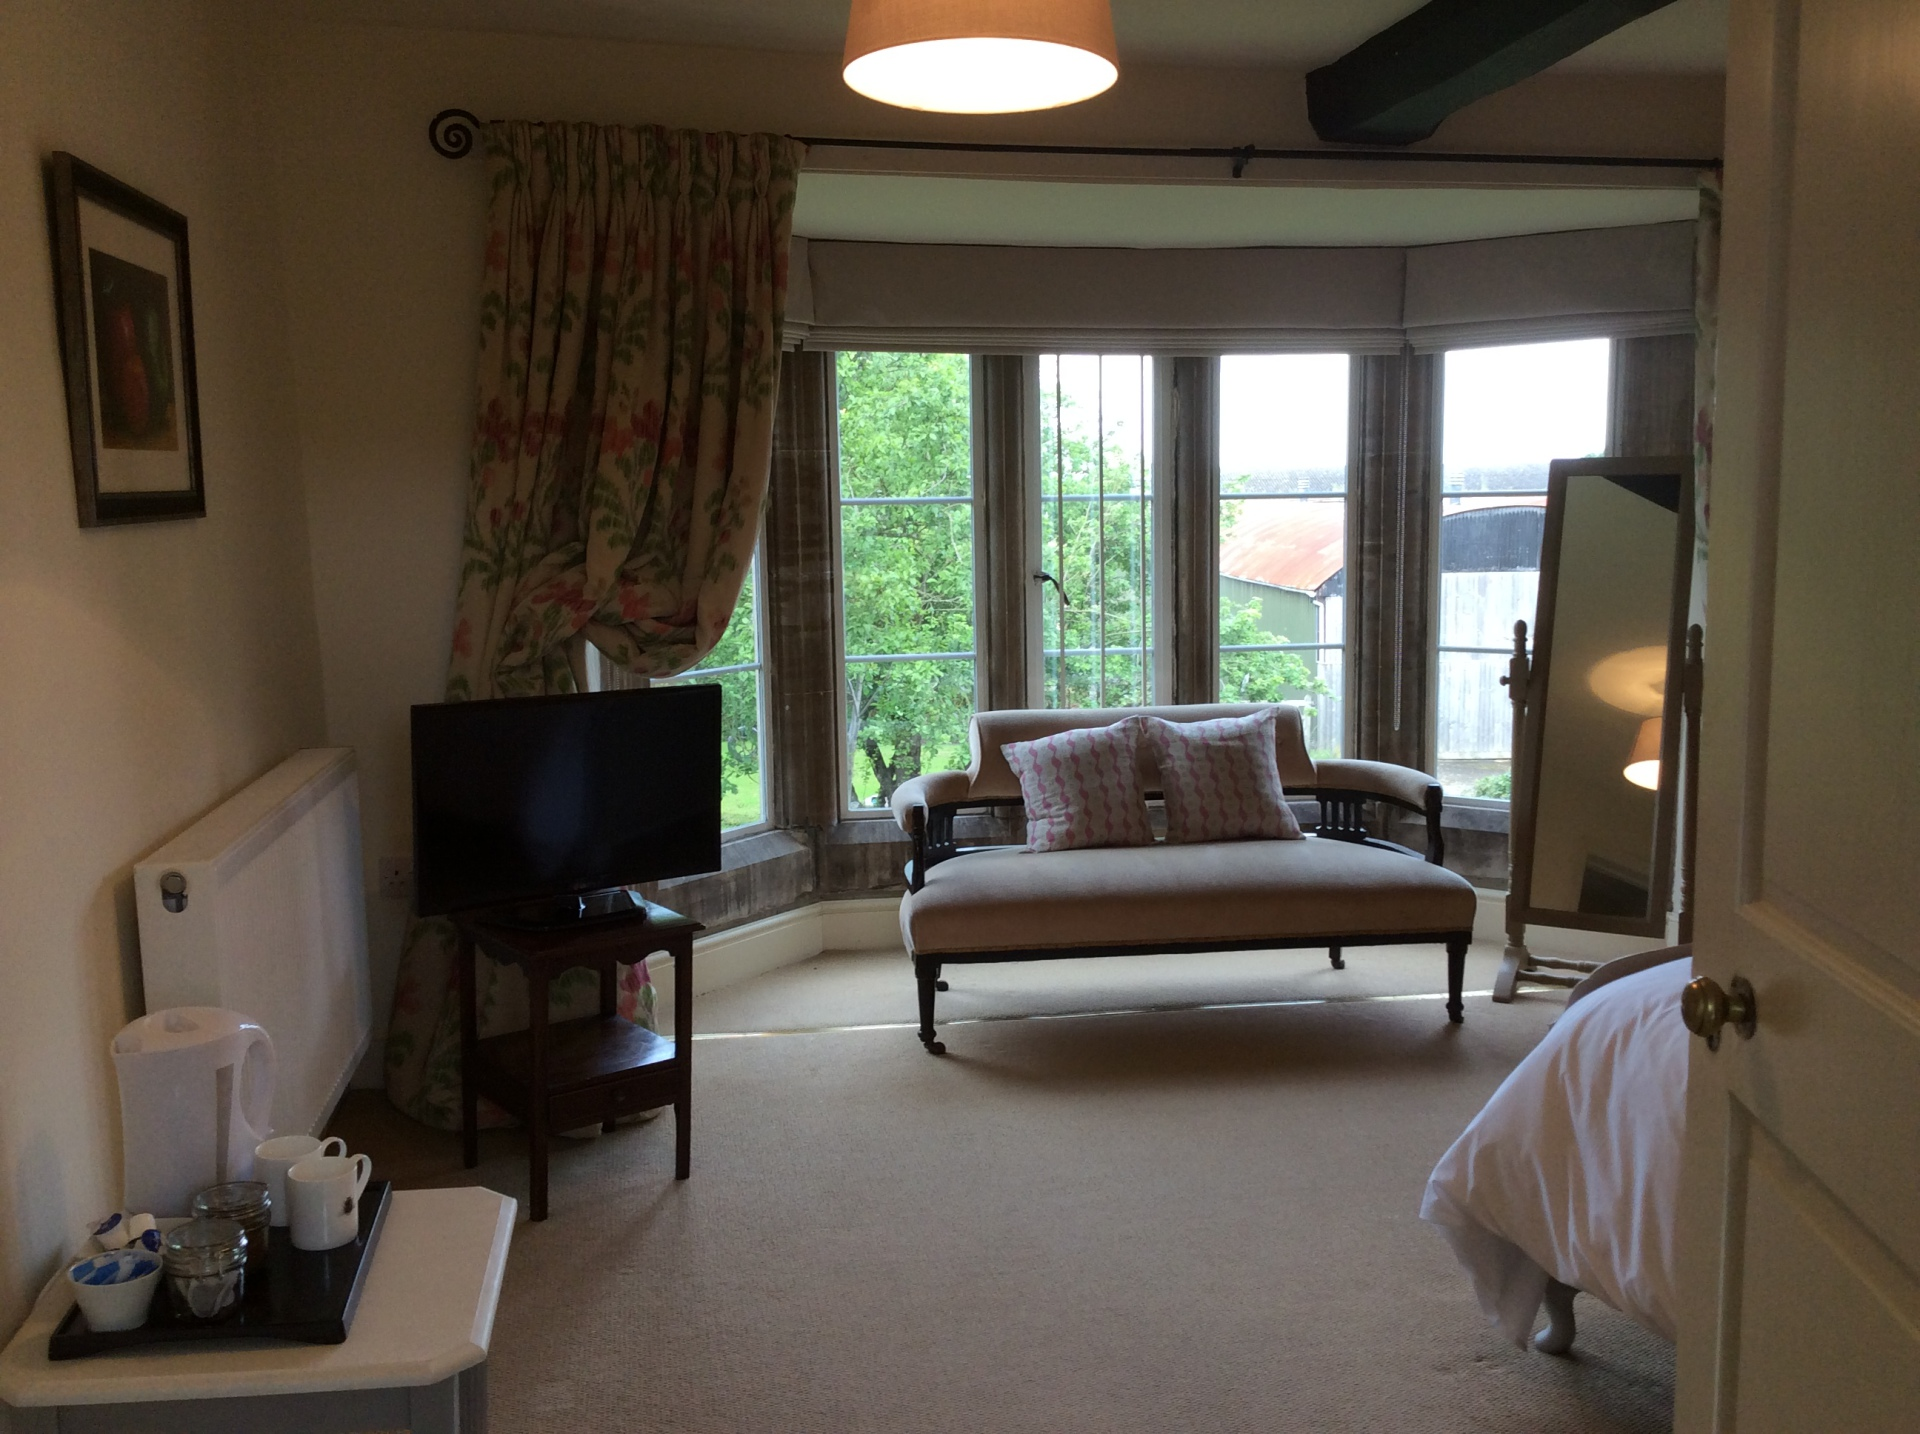 B&B in Rockingham,Corby